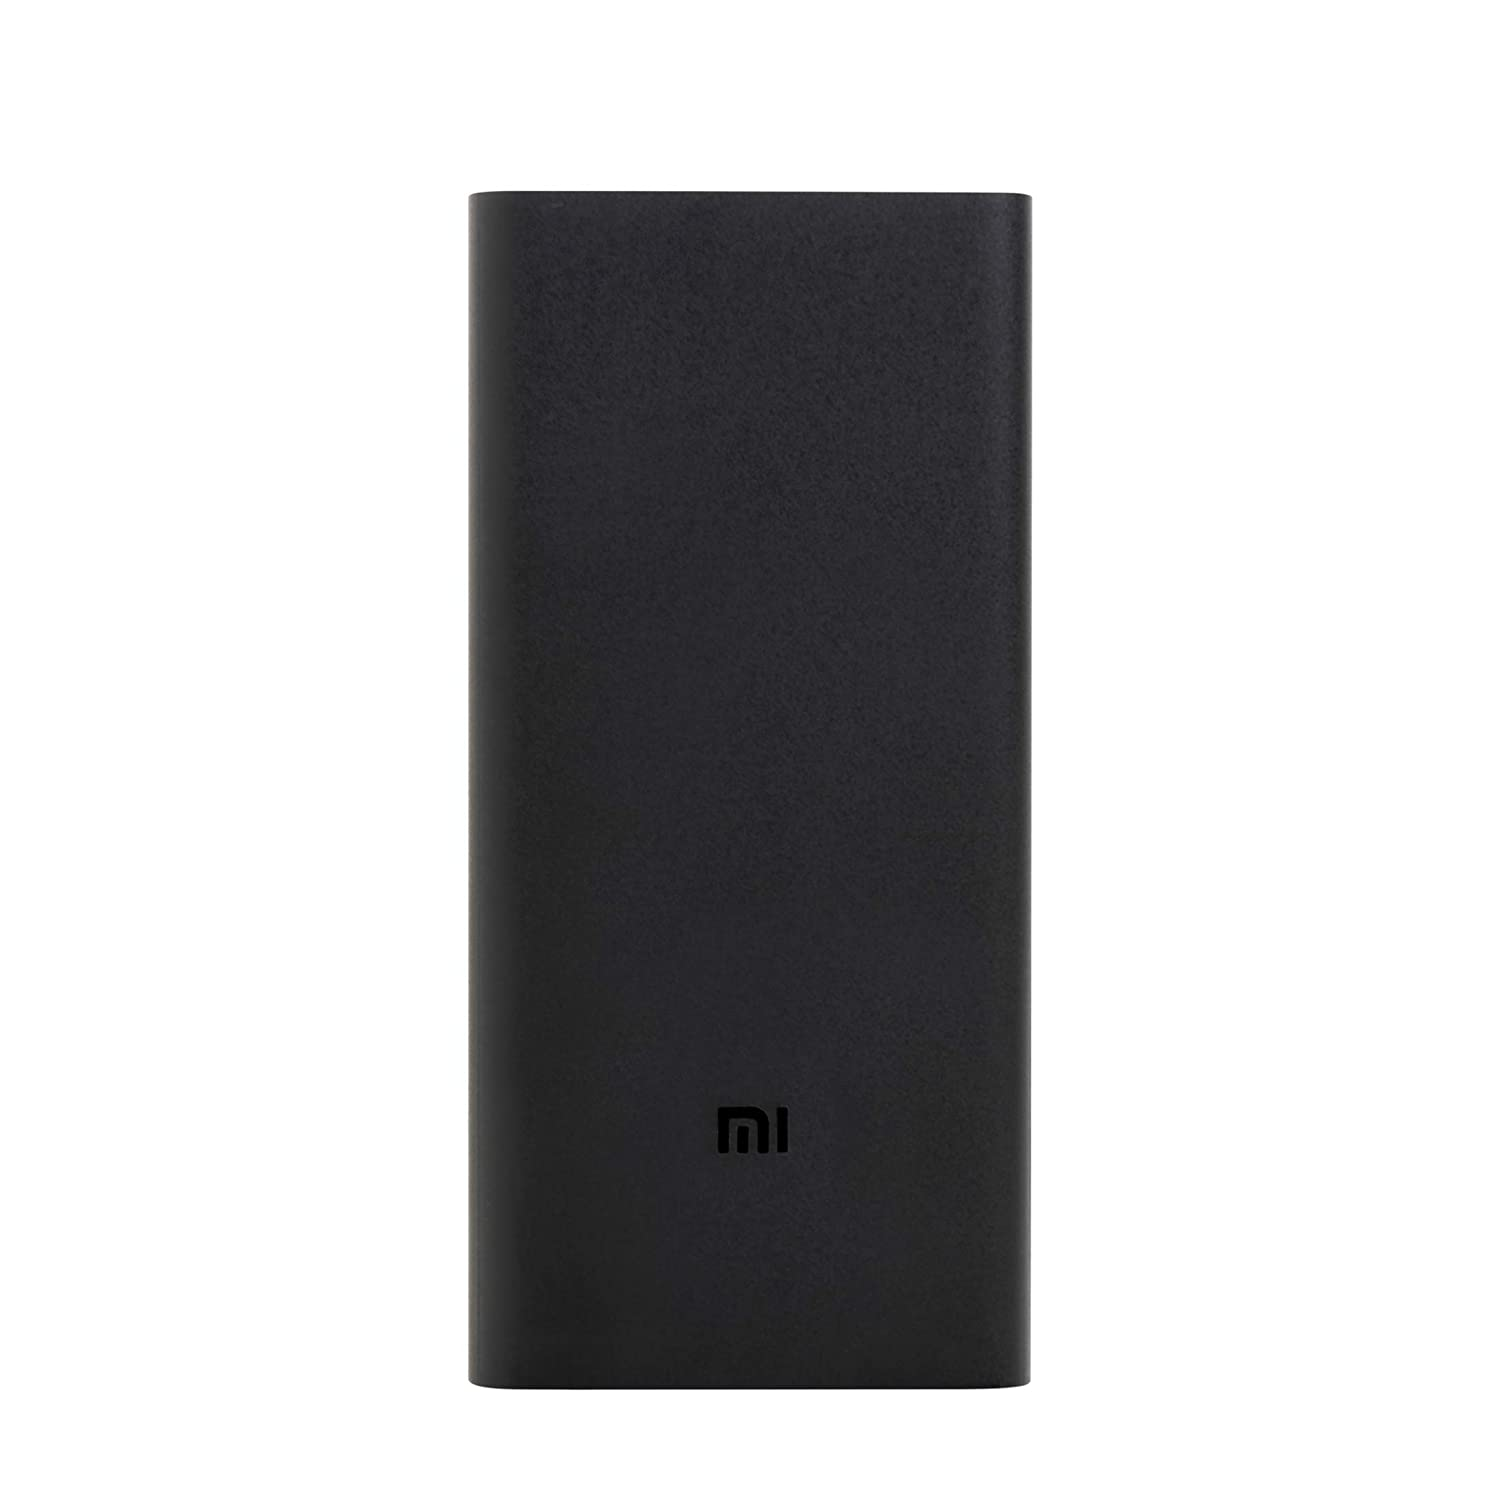 Mi 20000mAH Li-Polymer Power Bank 2i 18W Fast Charging